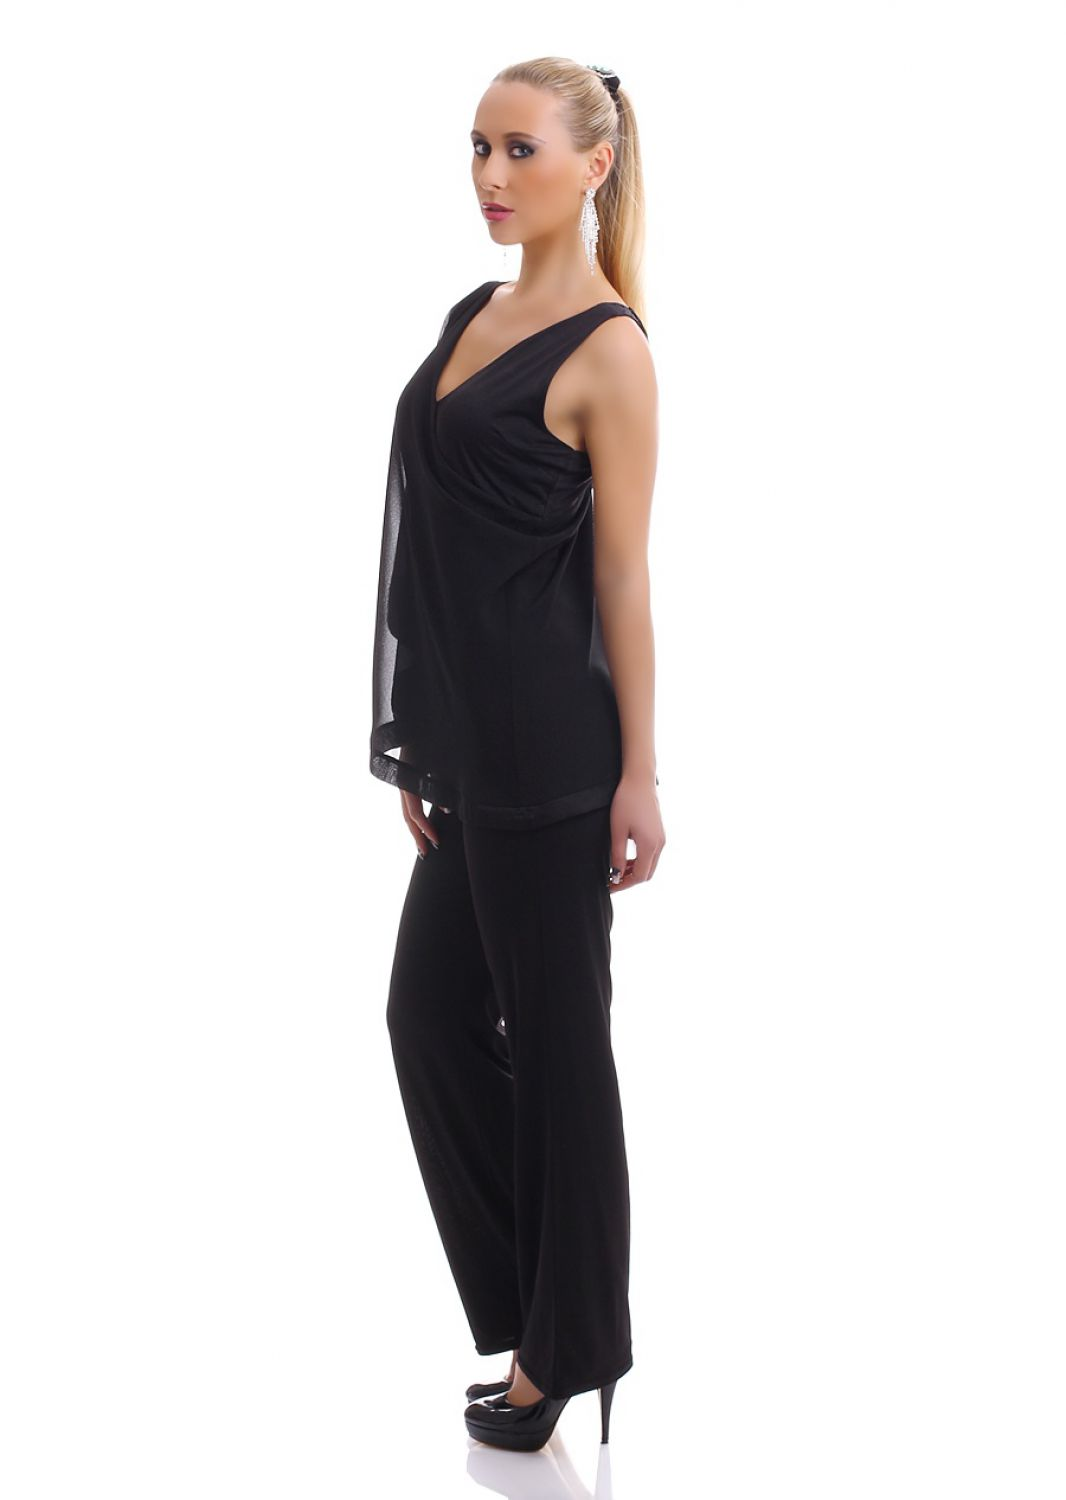 damen eleganter overall jumpsuit einteiler hosenanzug. Black Bedroom Furniture Sets. Home Design Ideas